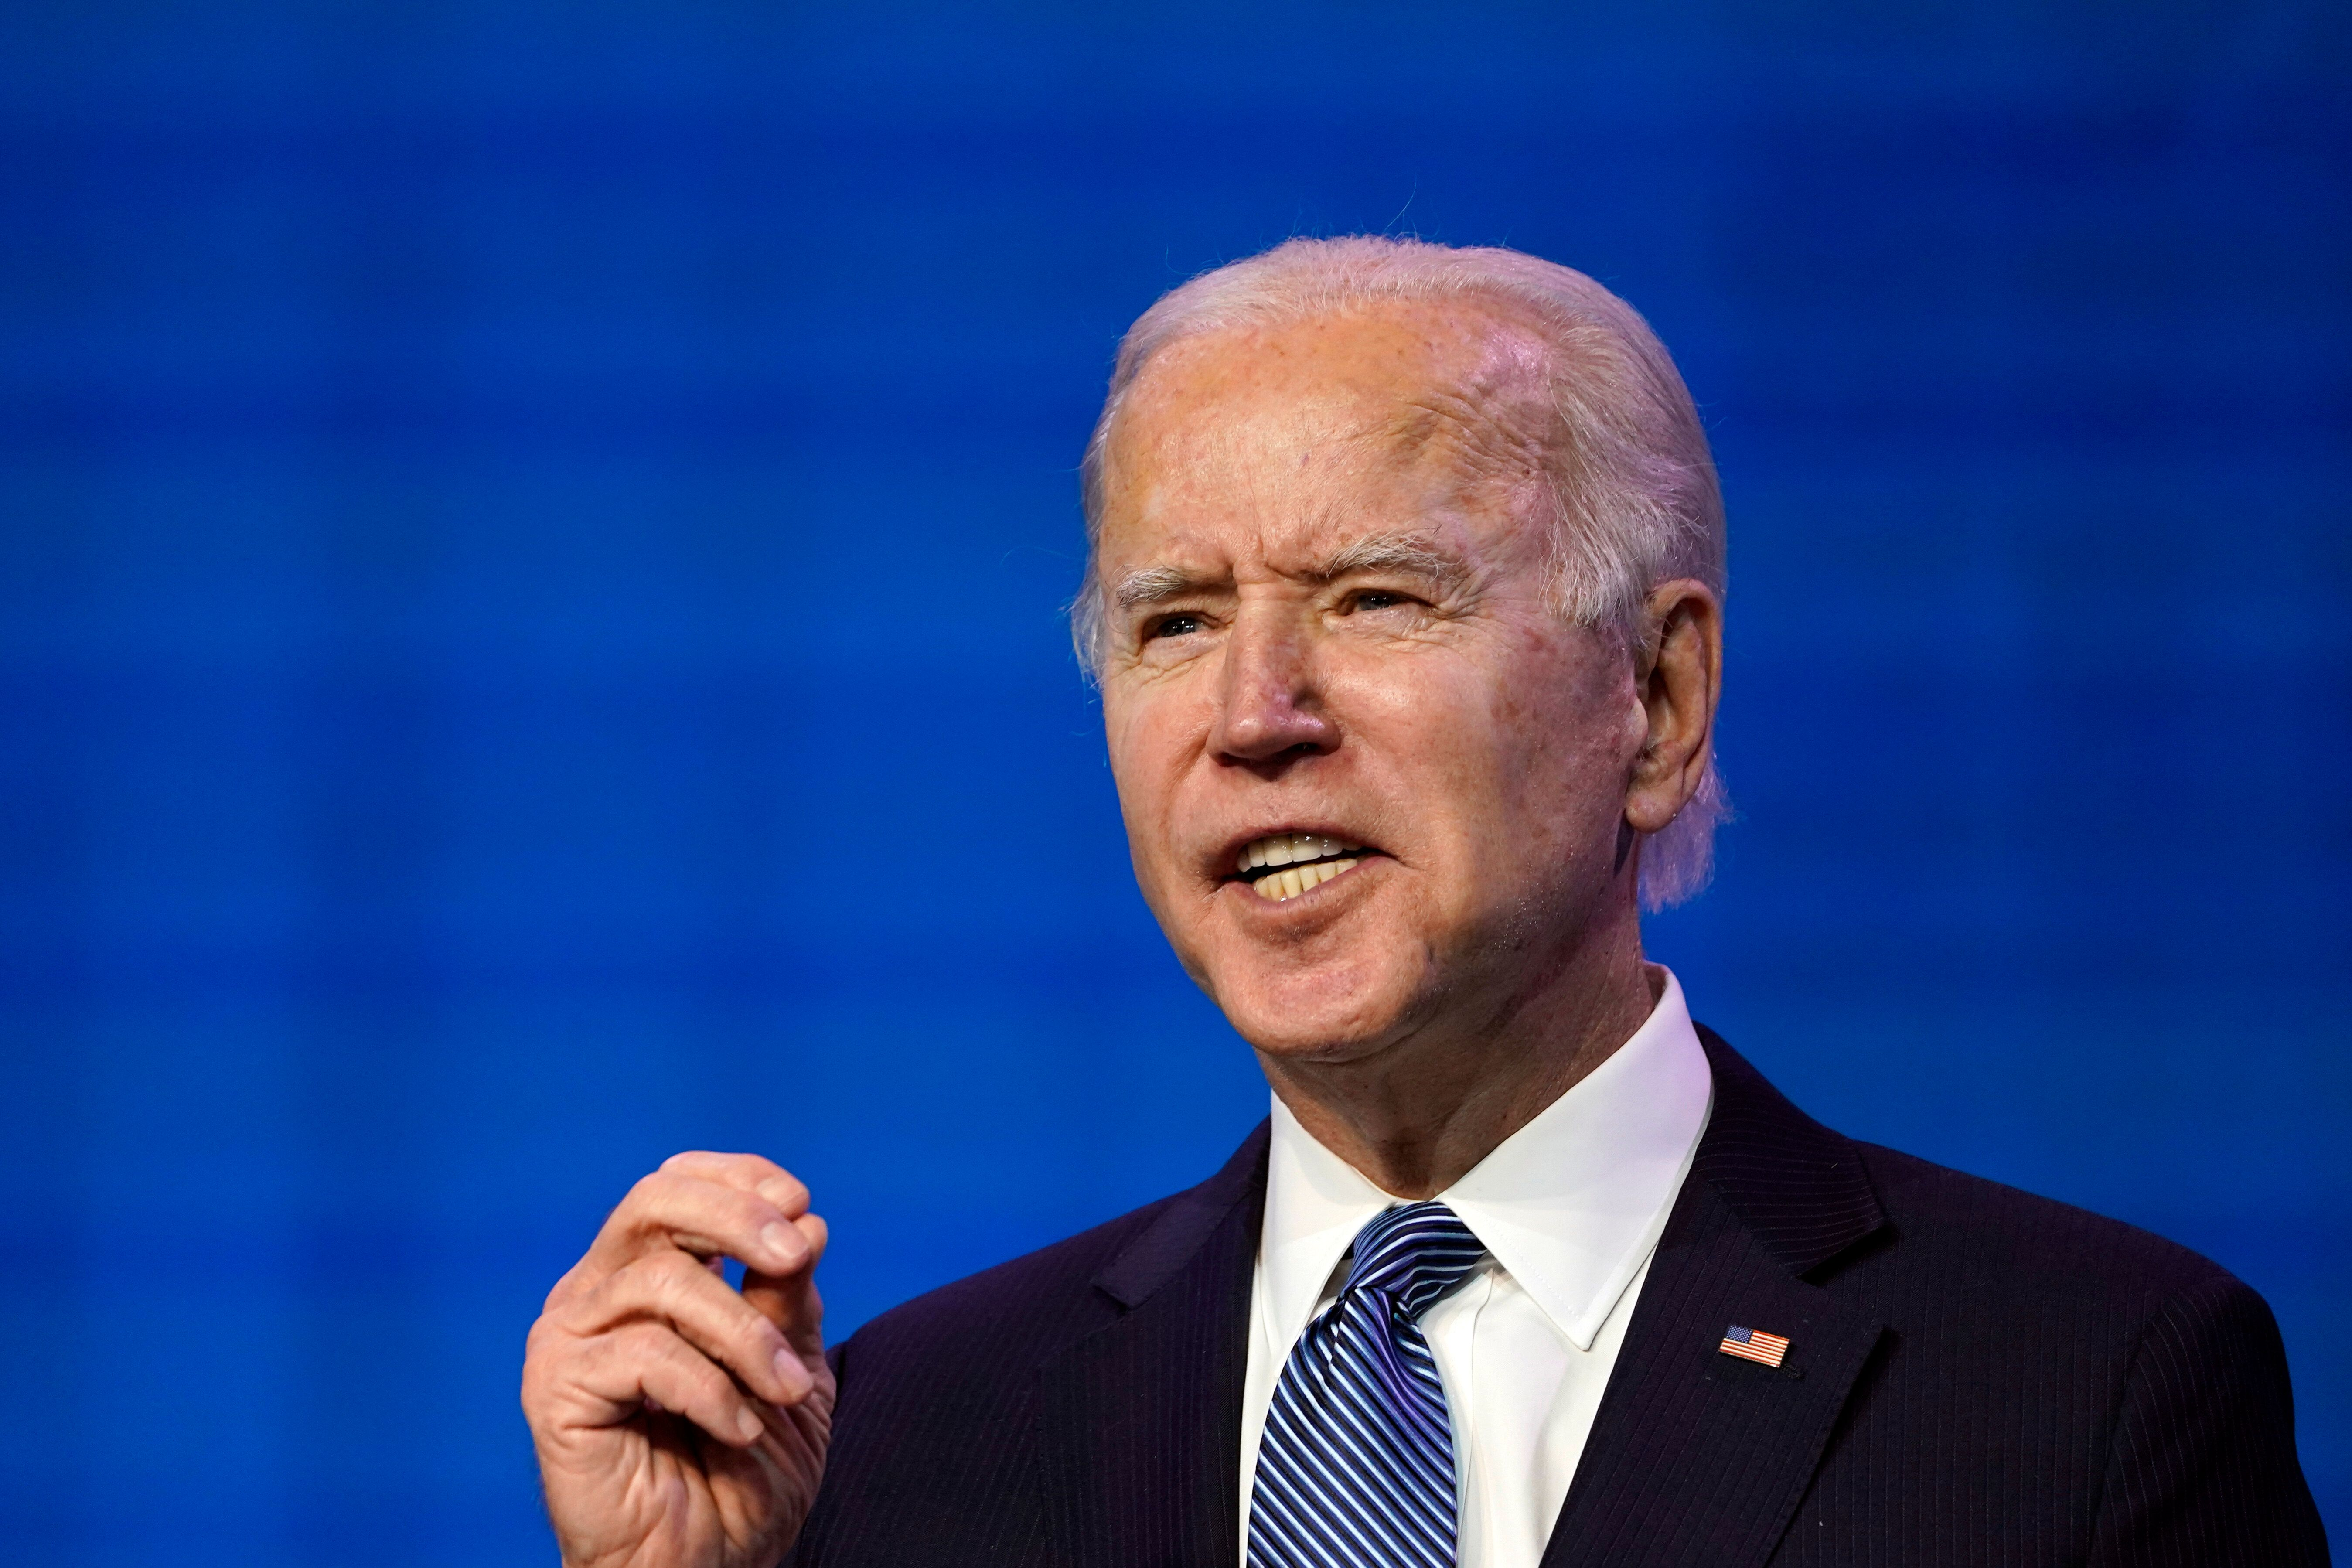 President-elect Joe Biden speaks during an event at The Queen theater in Wilmington, Del., Thursday, Jan. 7, 2021, to announc